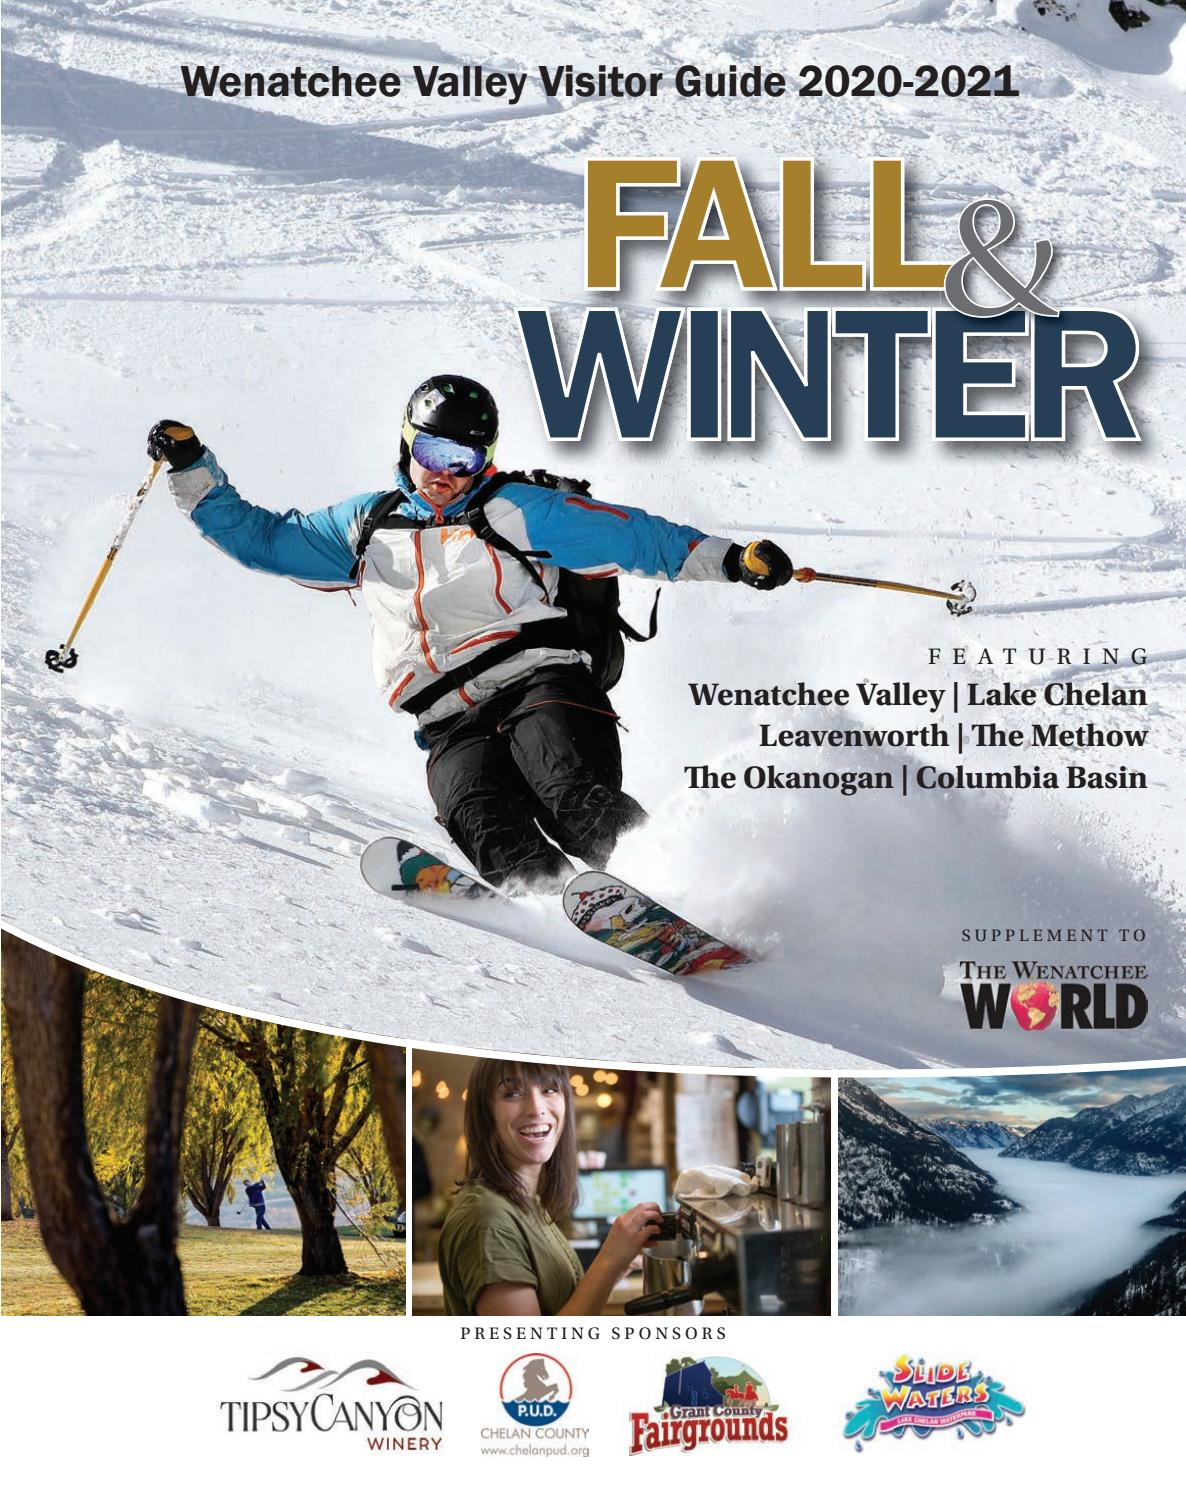 Odds That Lake Chelan Wa. Has Snow For Christmas 2020 Wenatchee Valley Visitor Guide 2020 2021. Fall & Winter. by The